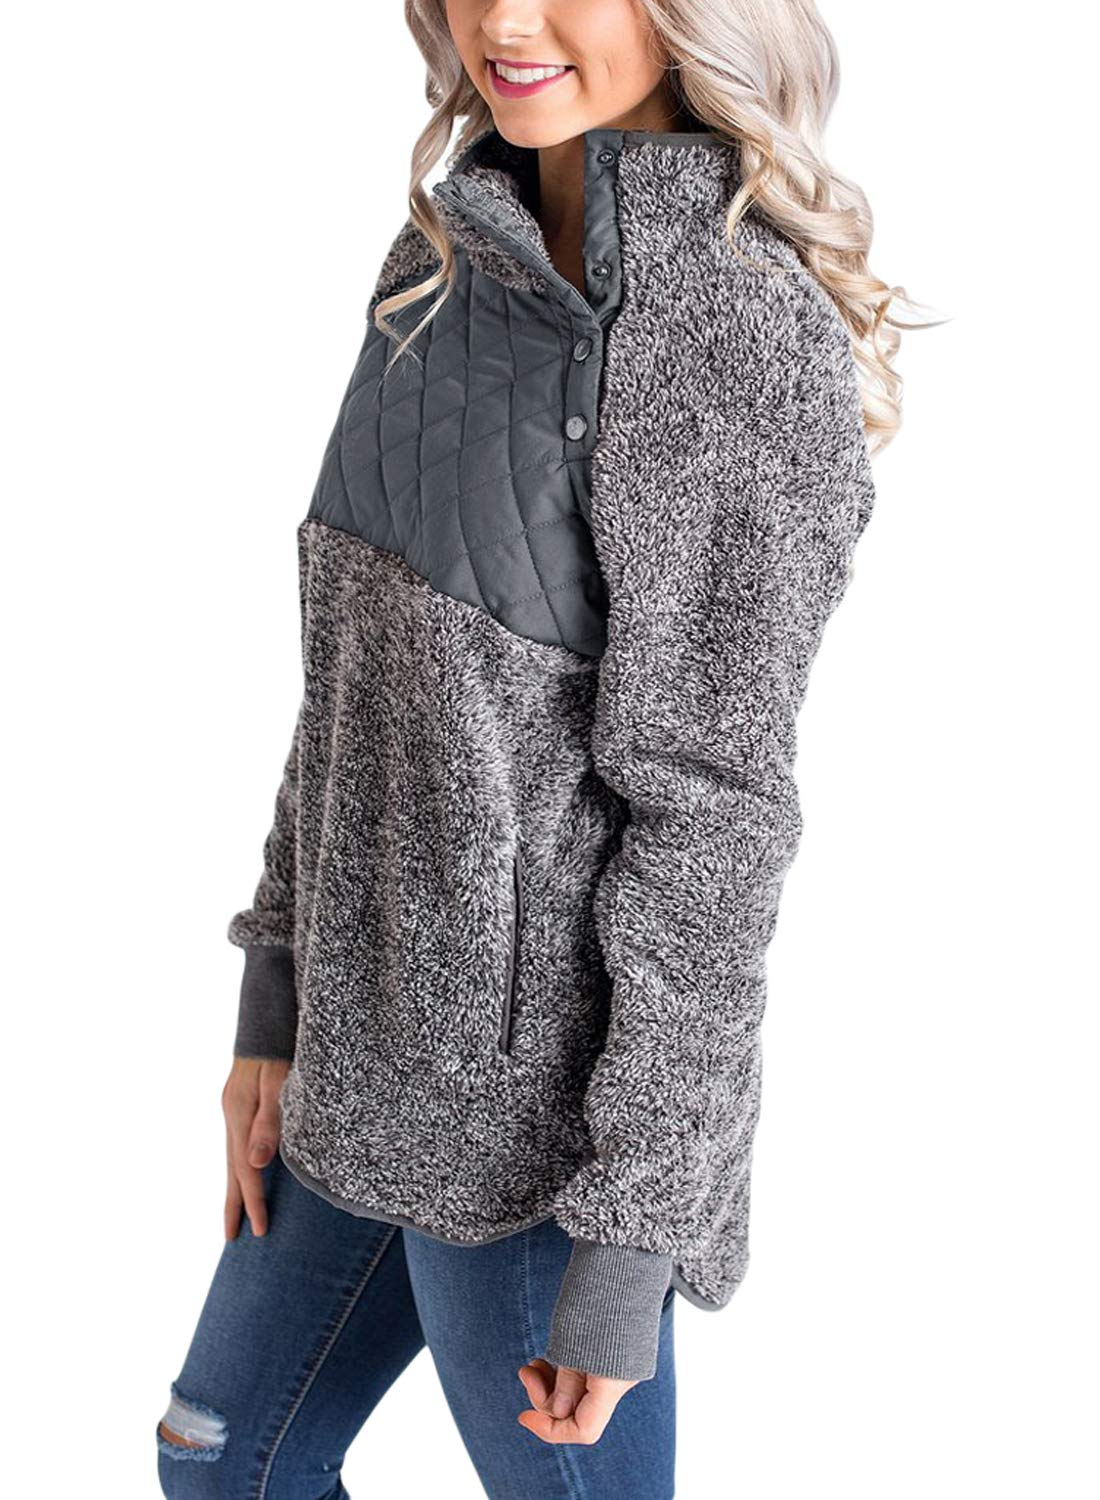 Sidefeel Women Button Neck Fleece Pullover Coat Asymmetrical Sweatshirts Outwear XX-Large Grey by Sidefeel (Image #2)